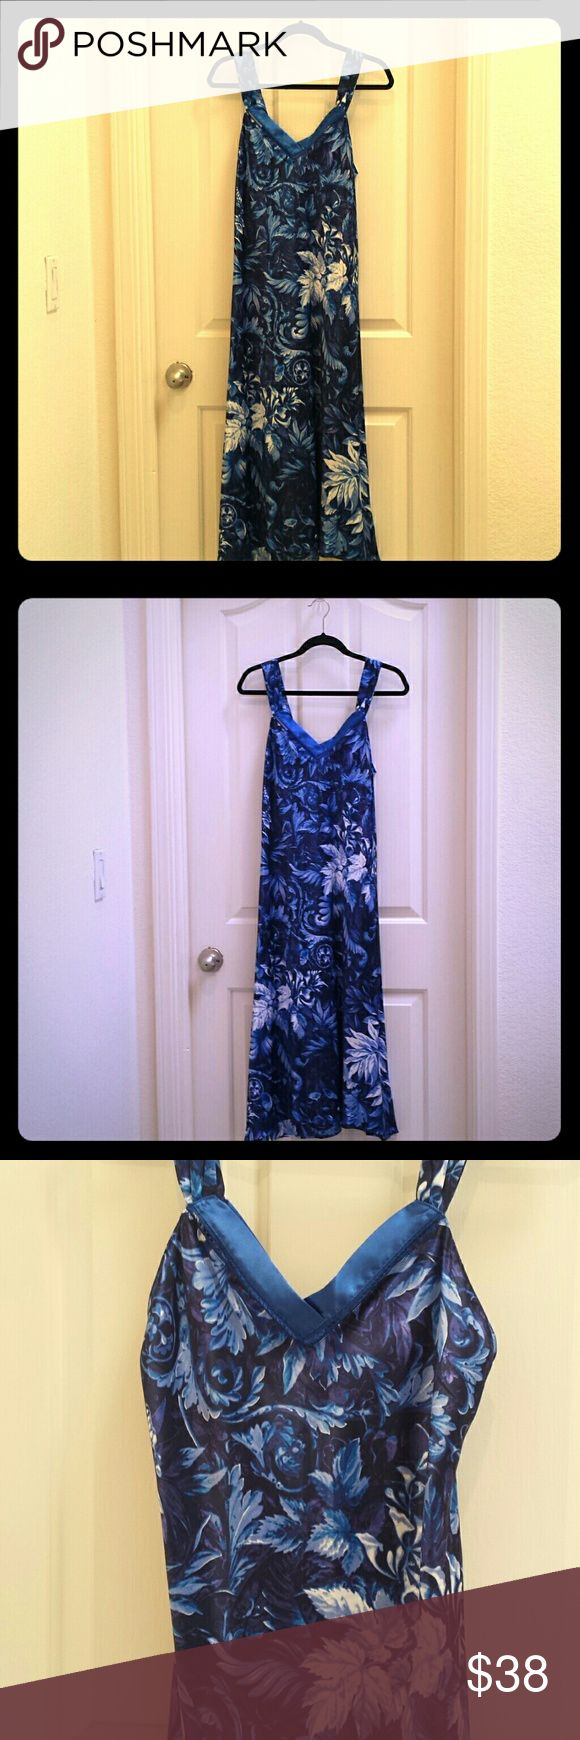 Oscar De La Renta Floral Nightgown XS This Gorgeous nightgown is New without tag. Took off tag, but a little loose fitting for me, so never worn. Blue silken floral night dress, a true beauty! Oscar de la Renta Sleepwear Intimates & Sleepwear